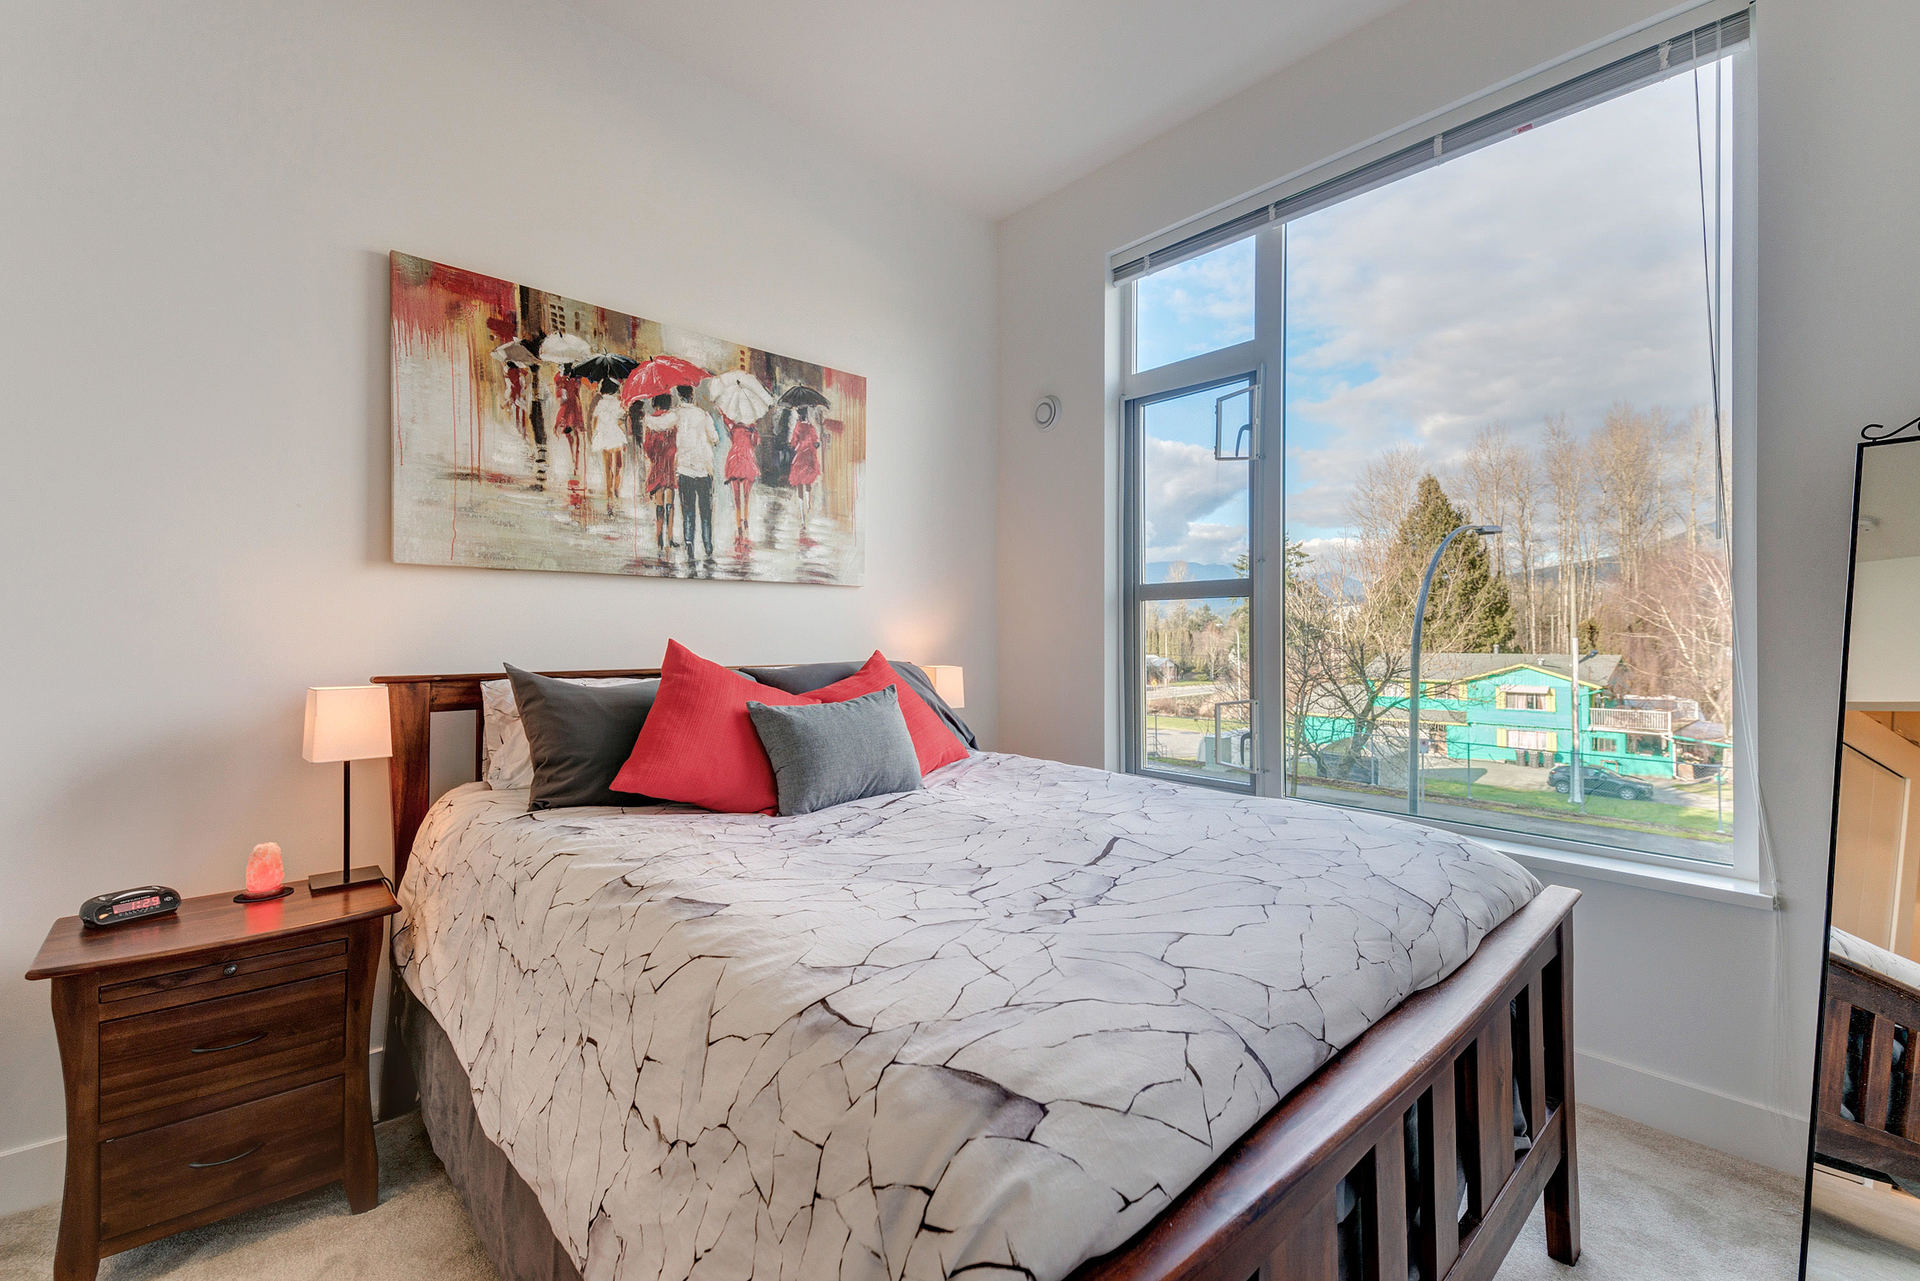 38202_14 at 206 - 2393 Ranger Lane, Riverwood, Port Coquitlam